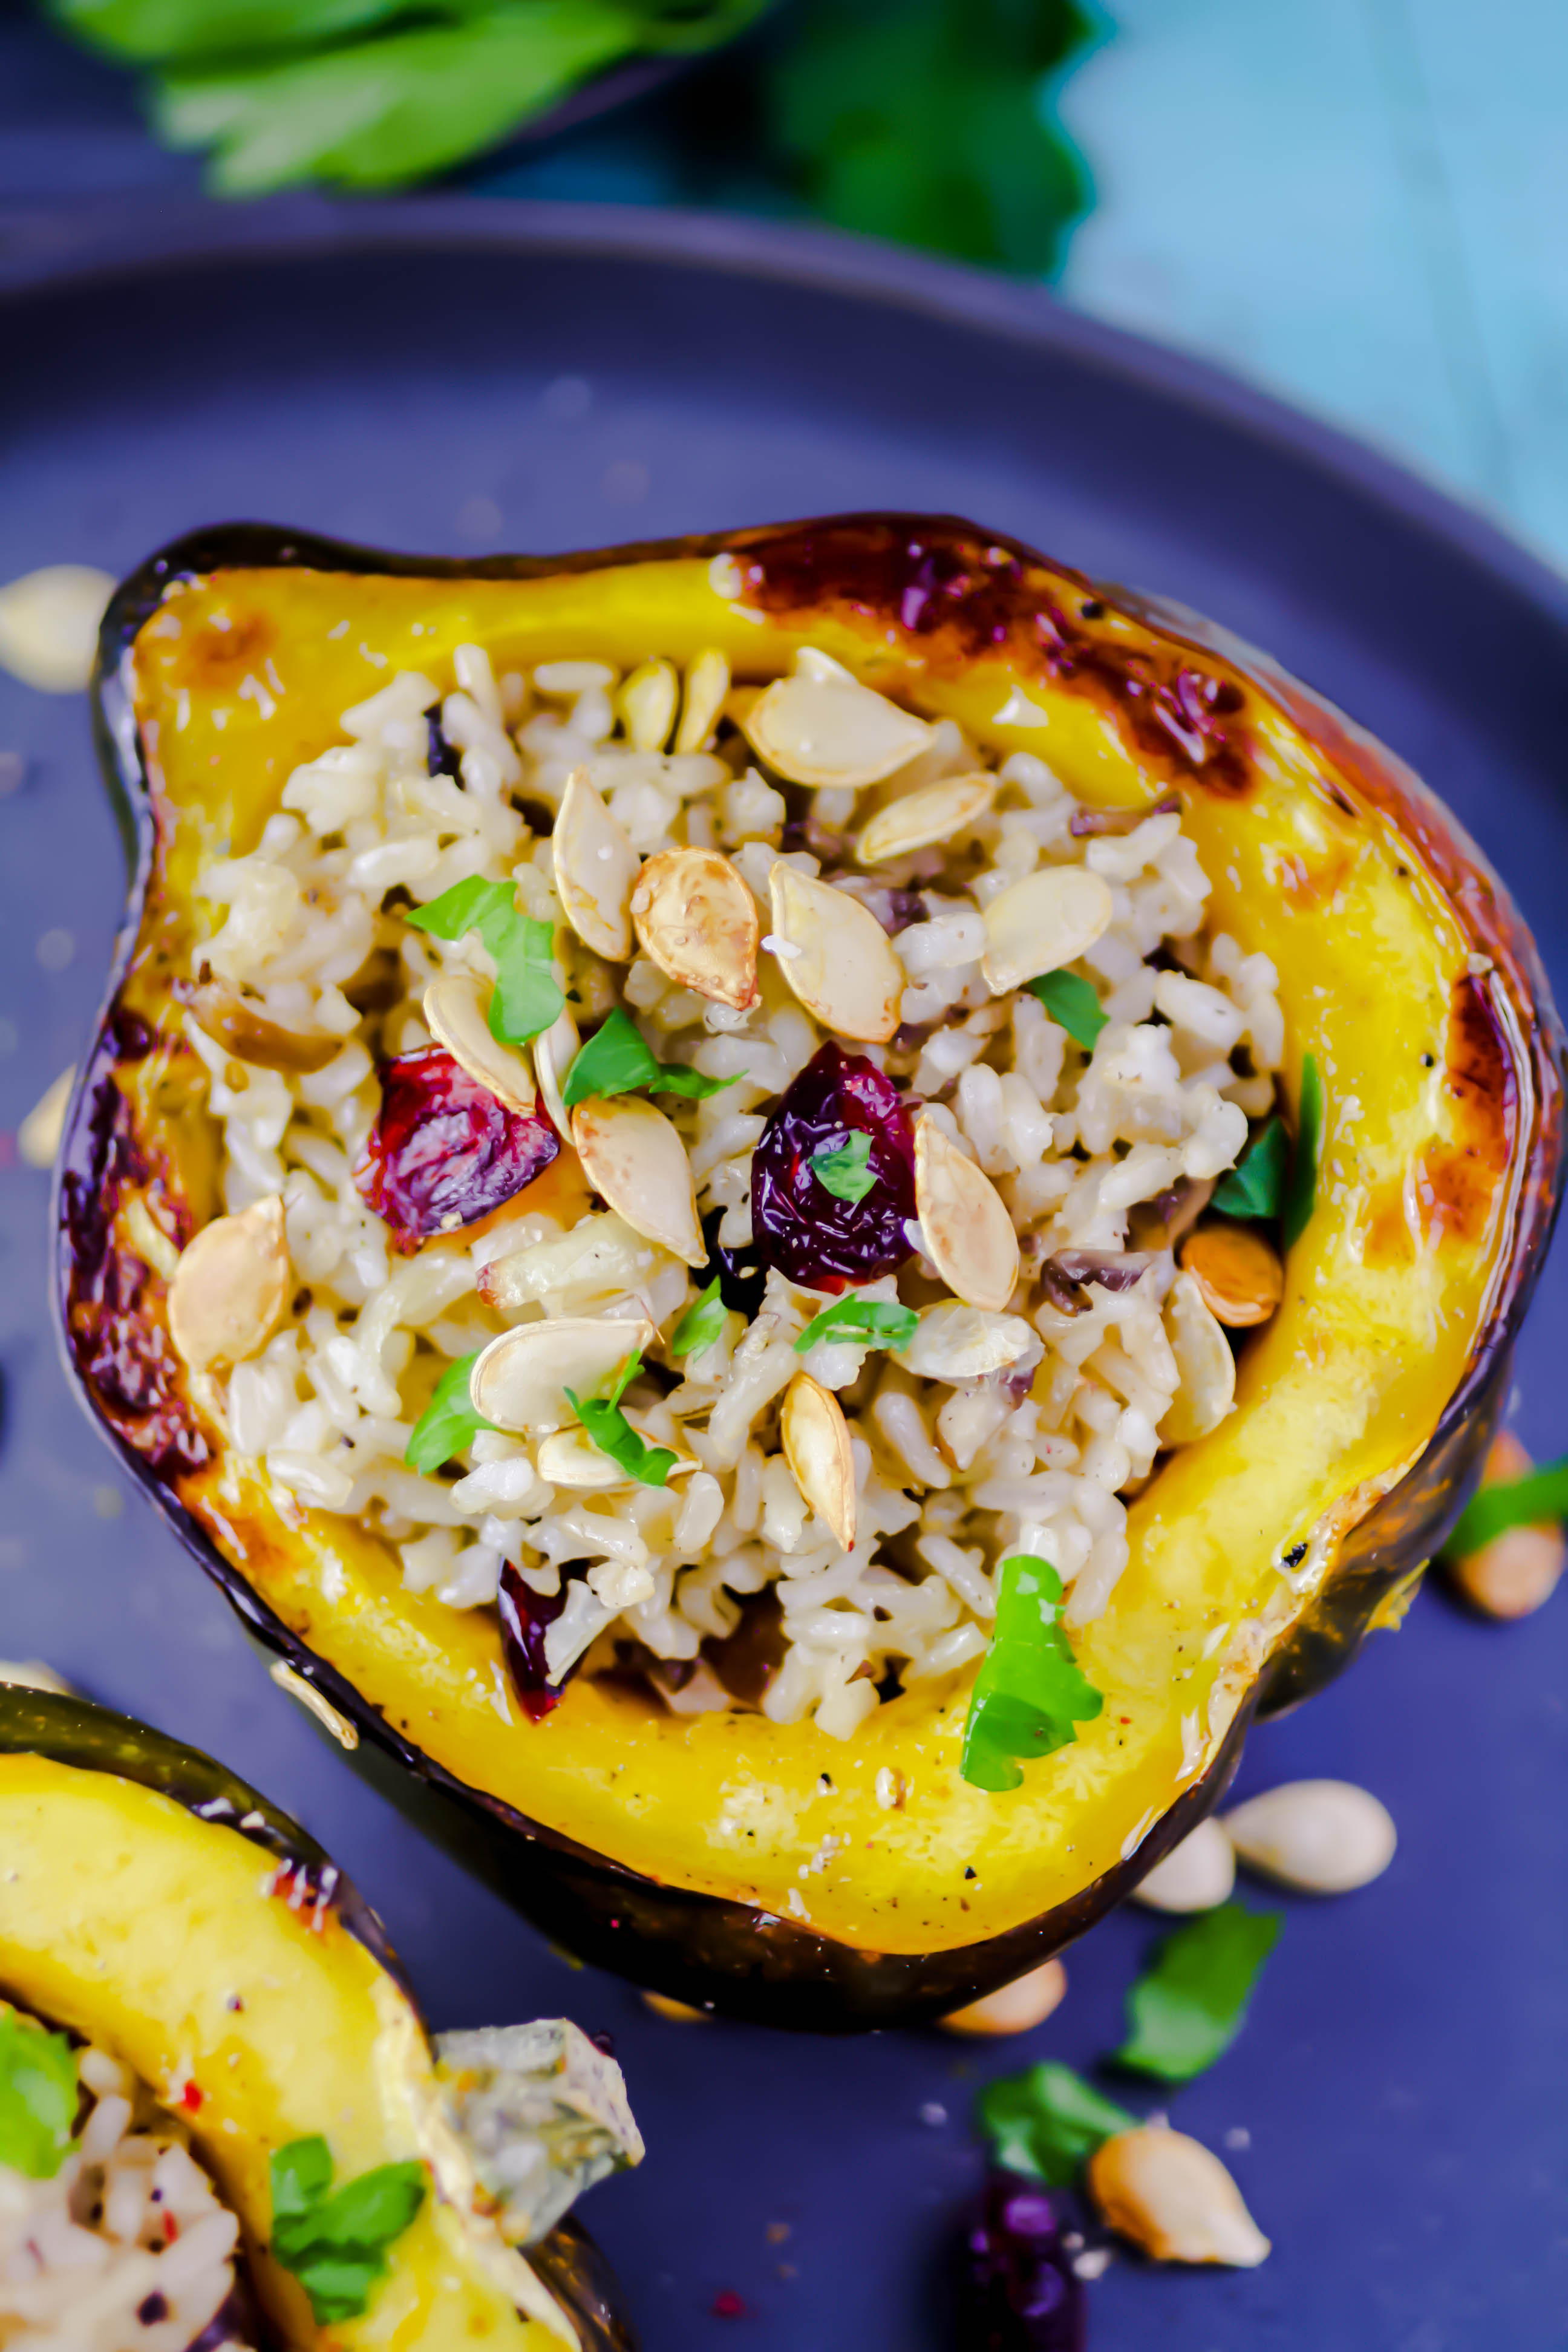 Acorn Squash Stuffed with Brown Rice, Mushrooms, and Cranberries is such a pretty dish to serve for a special meal. Acorn Squash Stuffed with Brown Rice, Mushrooms, and Cranberries is easy to make and fun to serve.